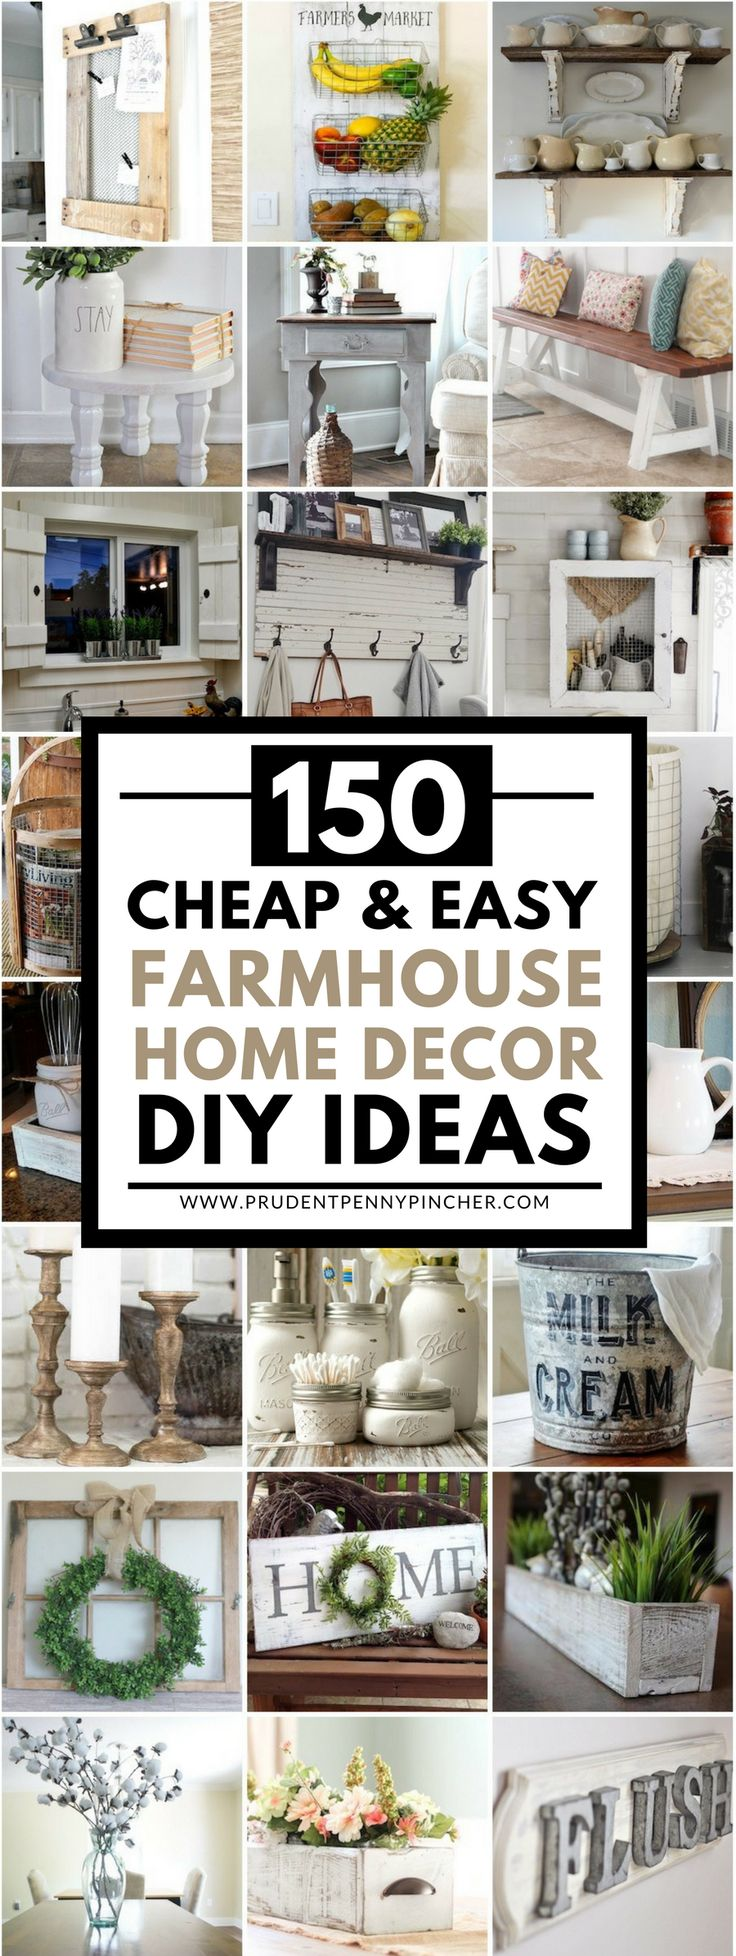 Best 25 Farmhouse Decor Ideas On Pinterest Farm Kitchen